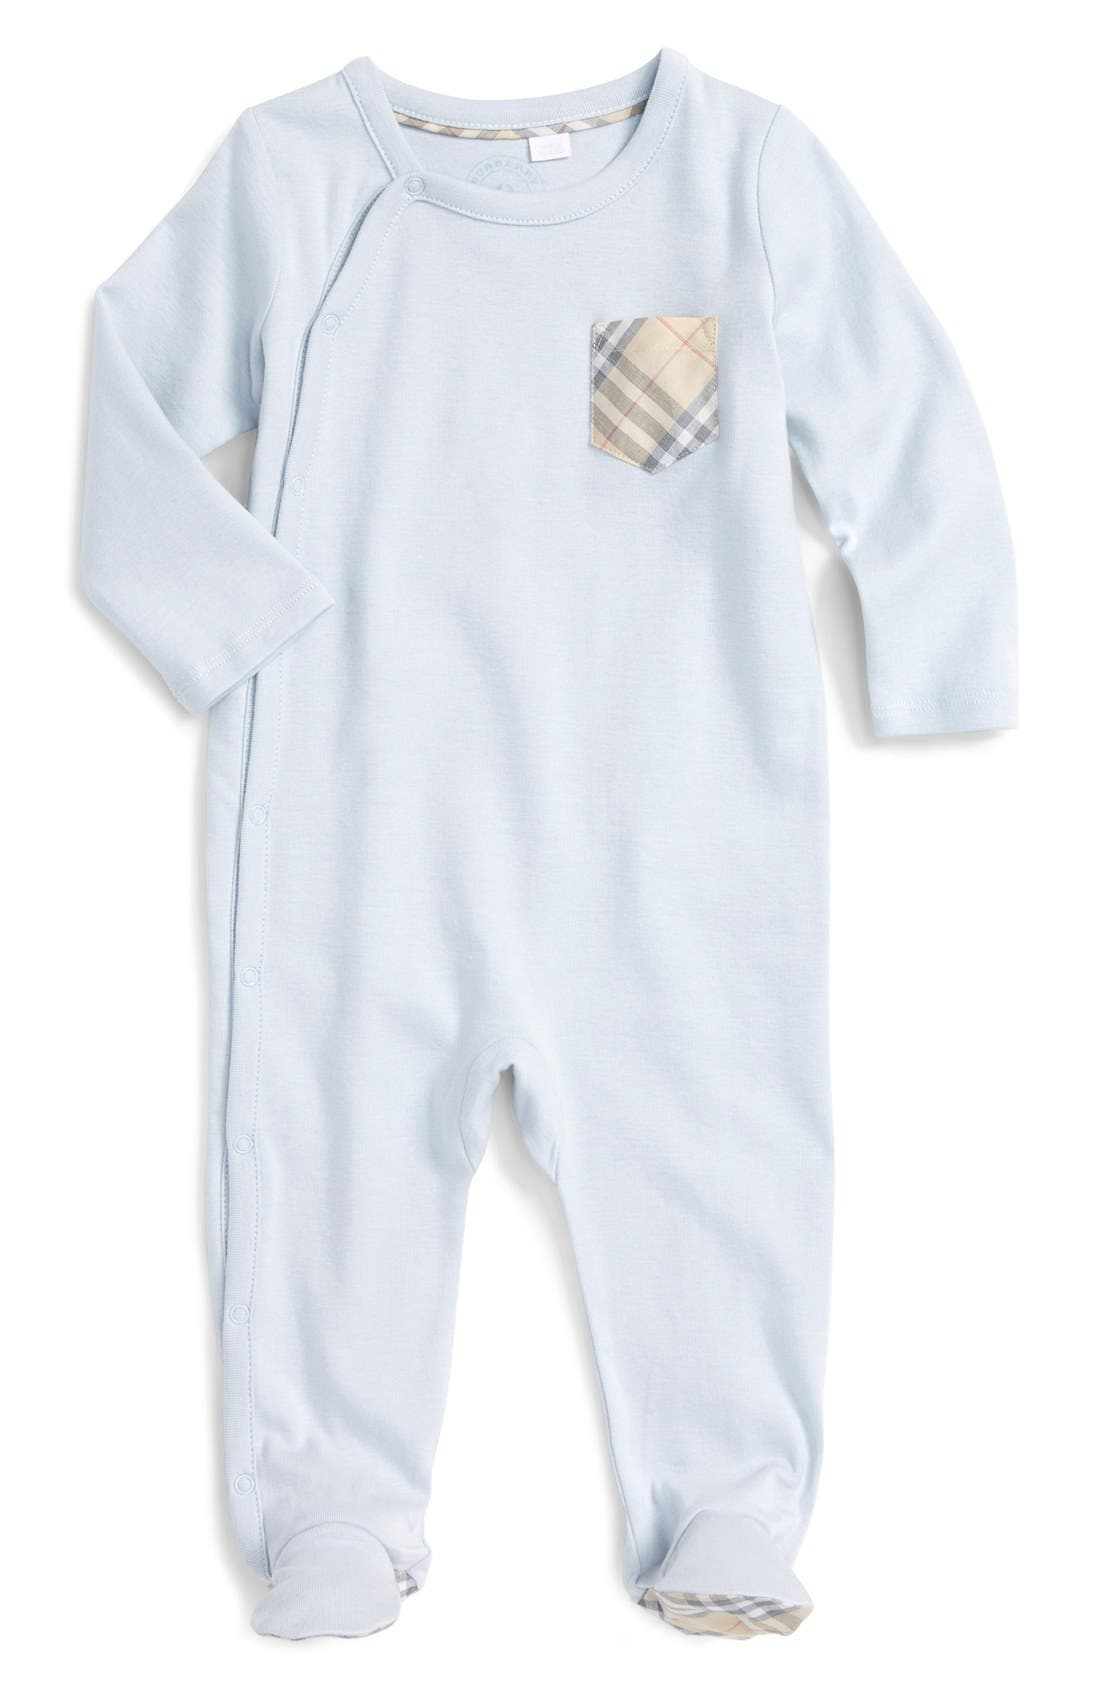 Burberry 'Jaydin' Check Trim Cotton Footie (Baby Boys)